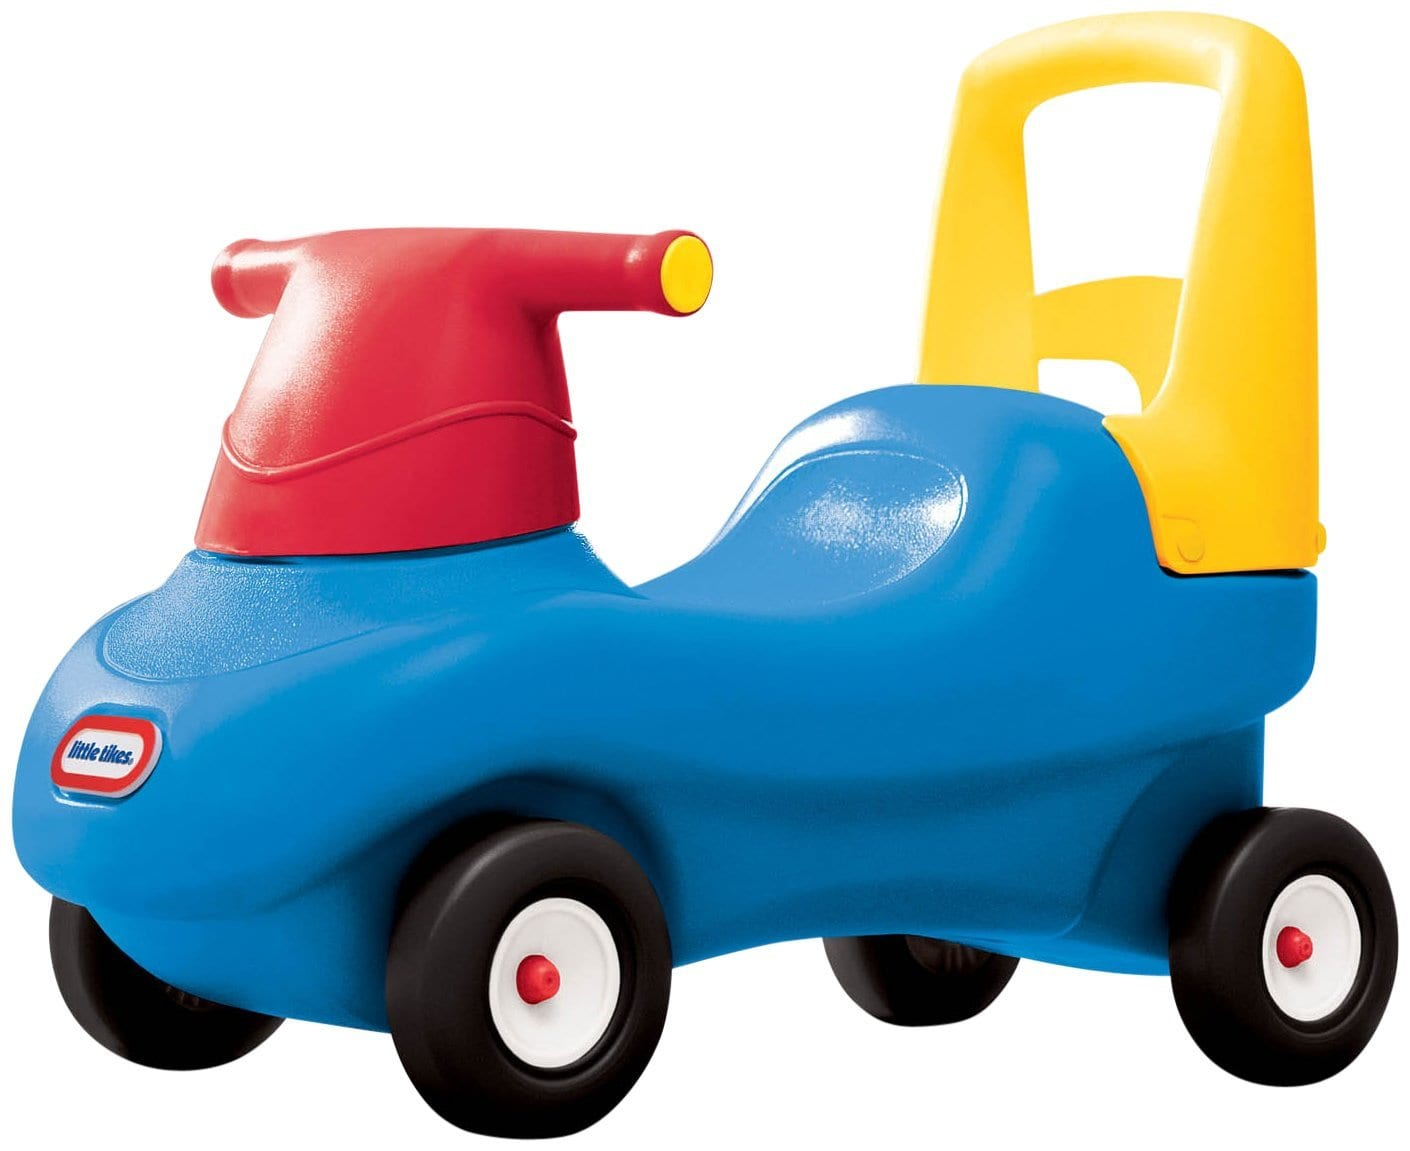 2. Little Tikes Push and Ride Racer